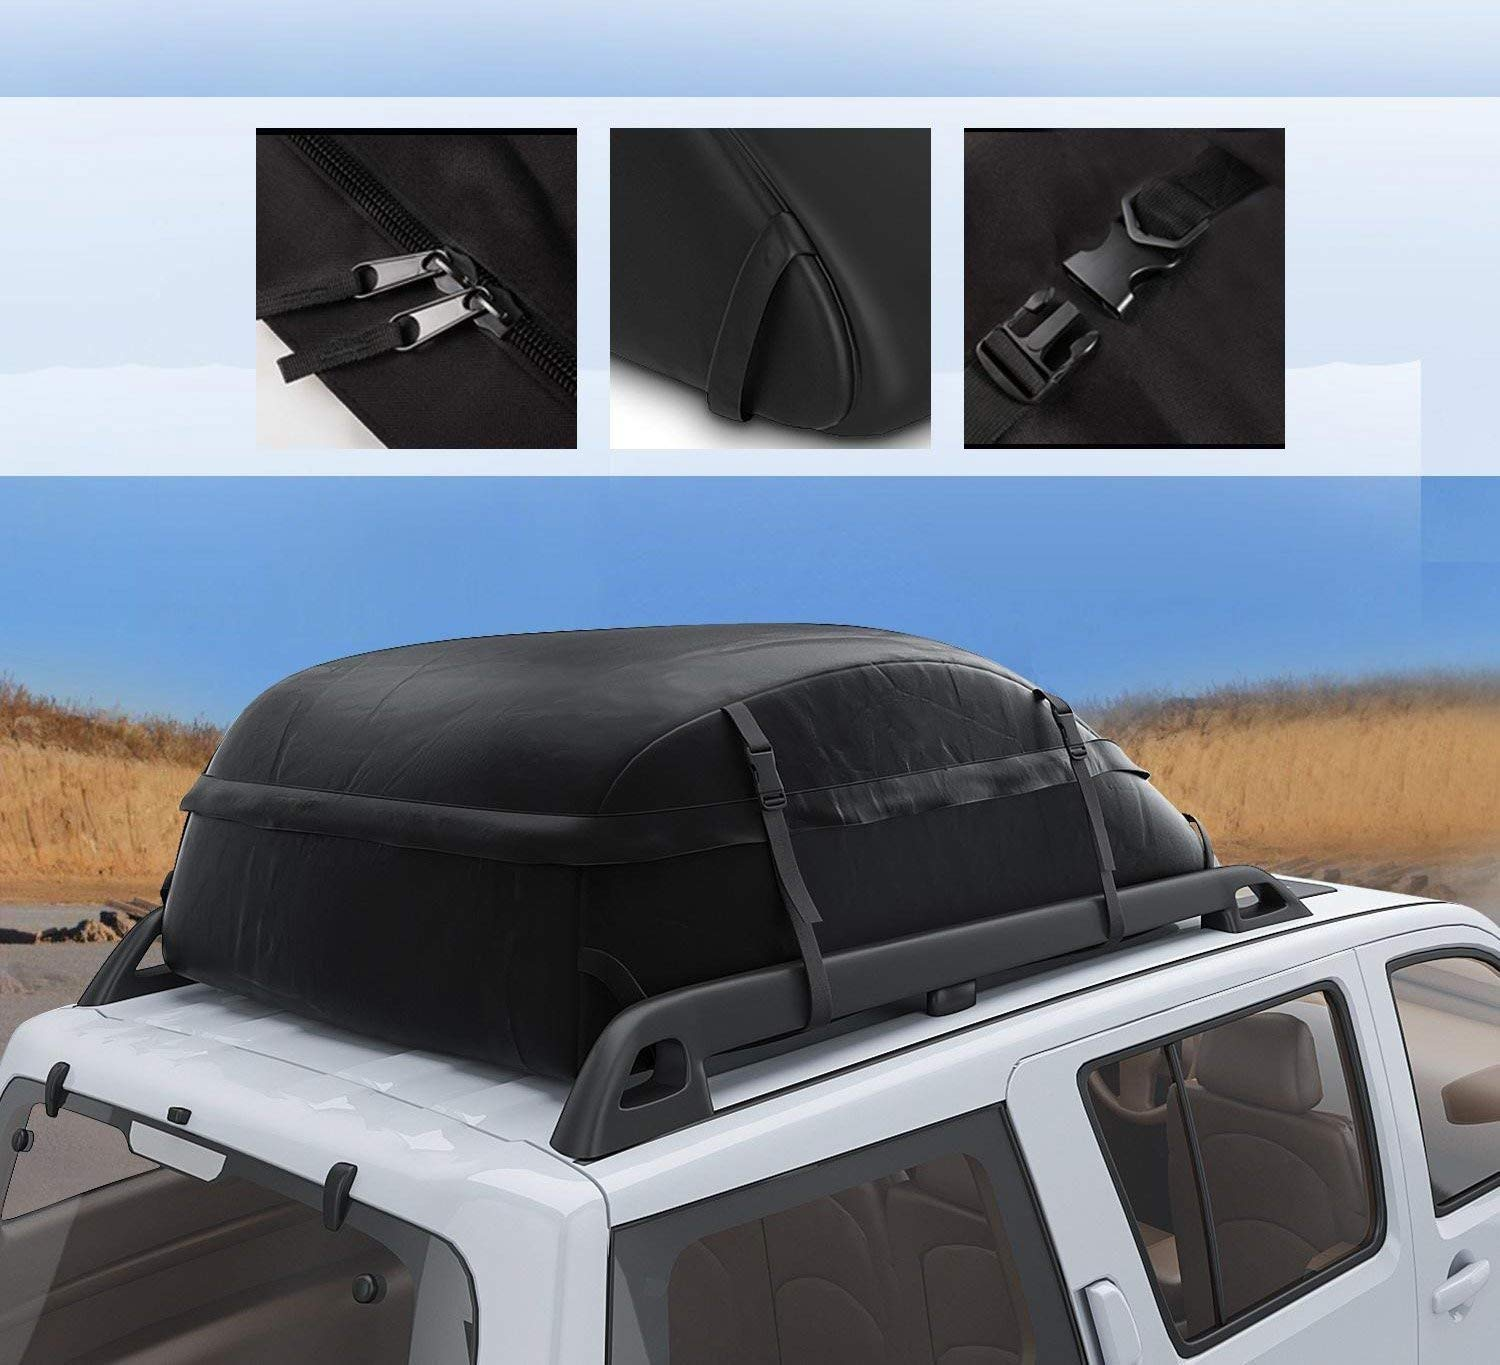 Soft Black CZC AUTO Car Roof Cargo Carrier ft Waterproof//Rainproof//Weatherproof Rooftop Storage Bag for Car SUV Van Sedan with Roof Rail Cross Bar Basket or Rack 15 cu